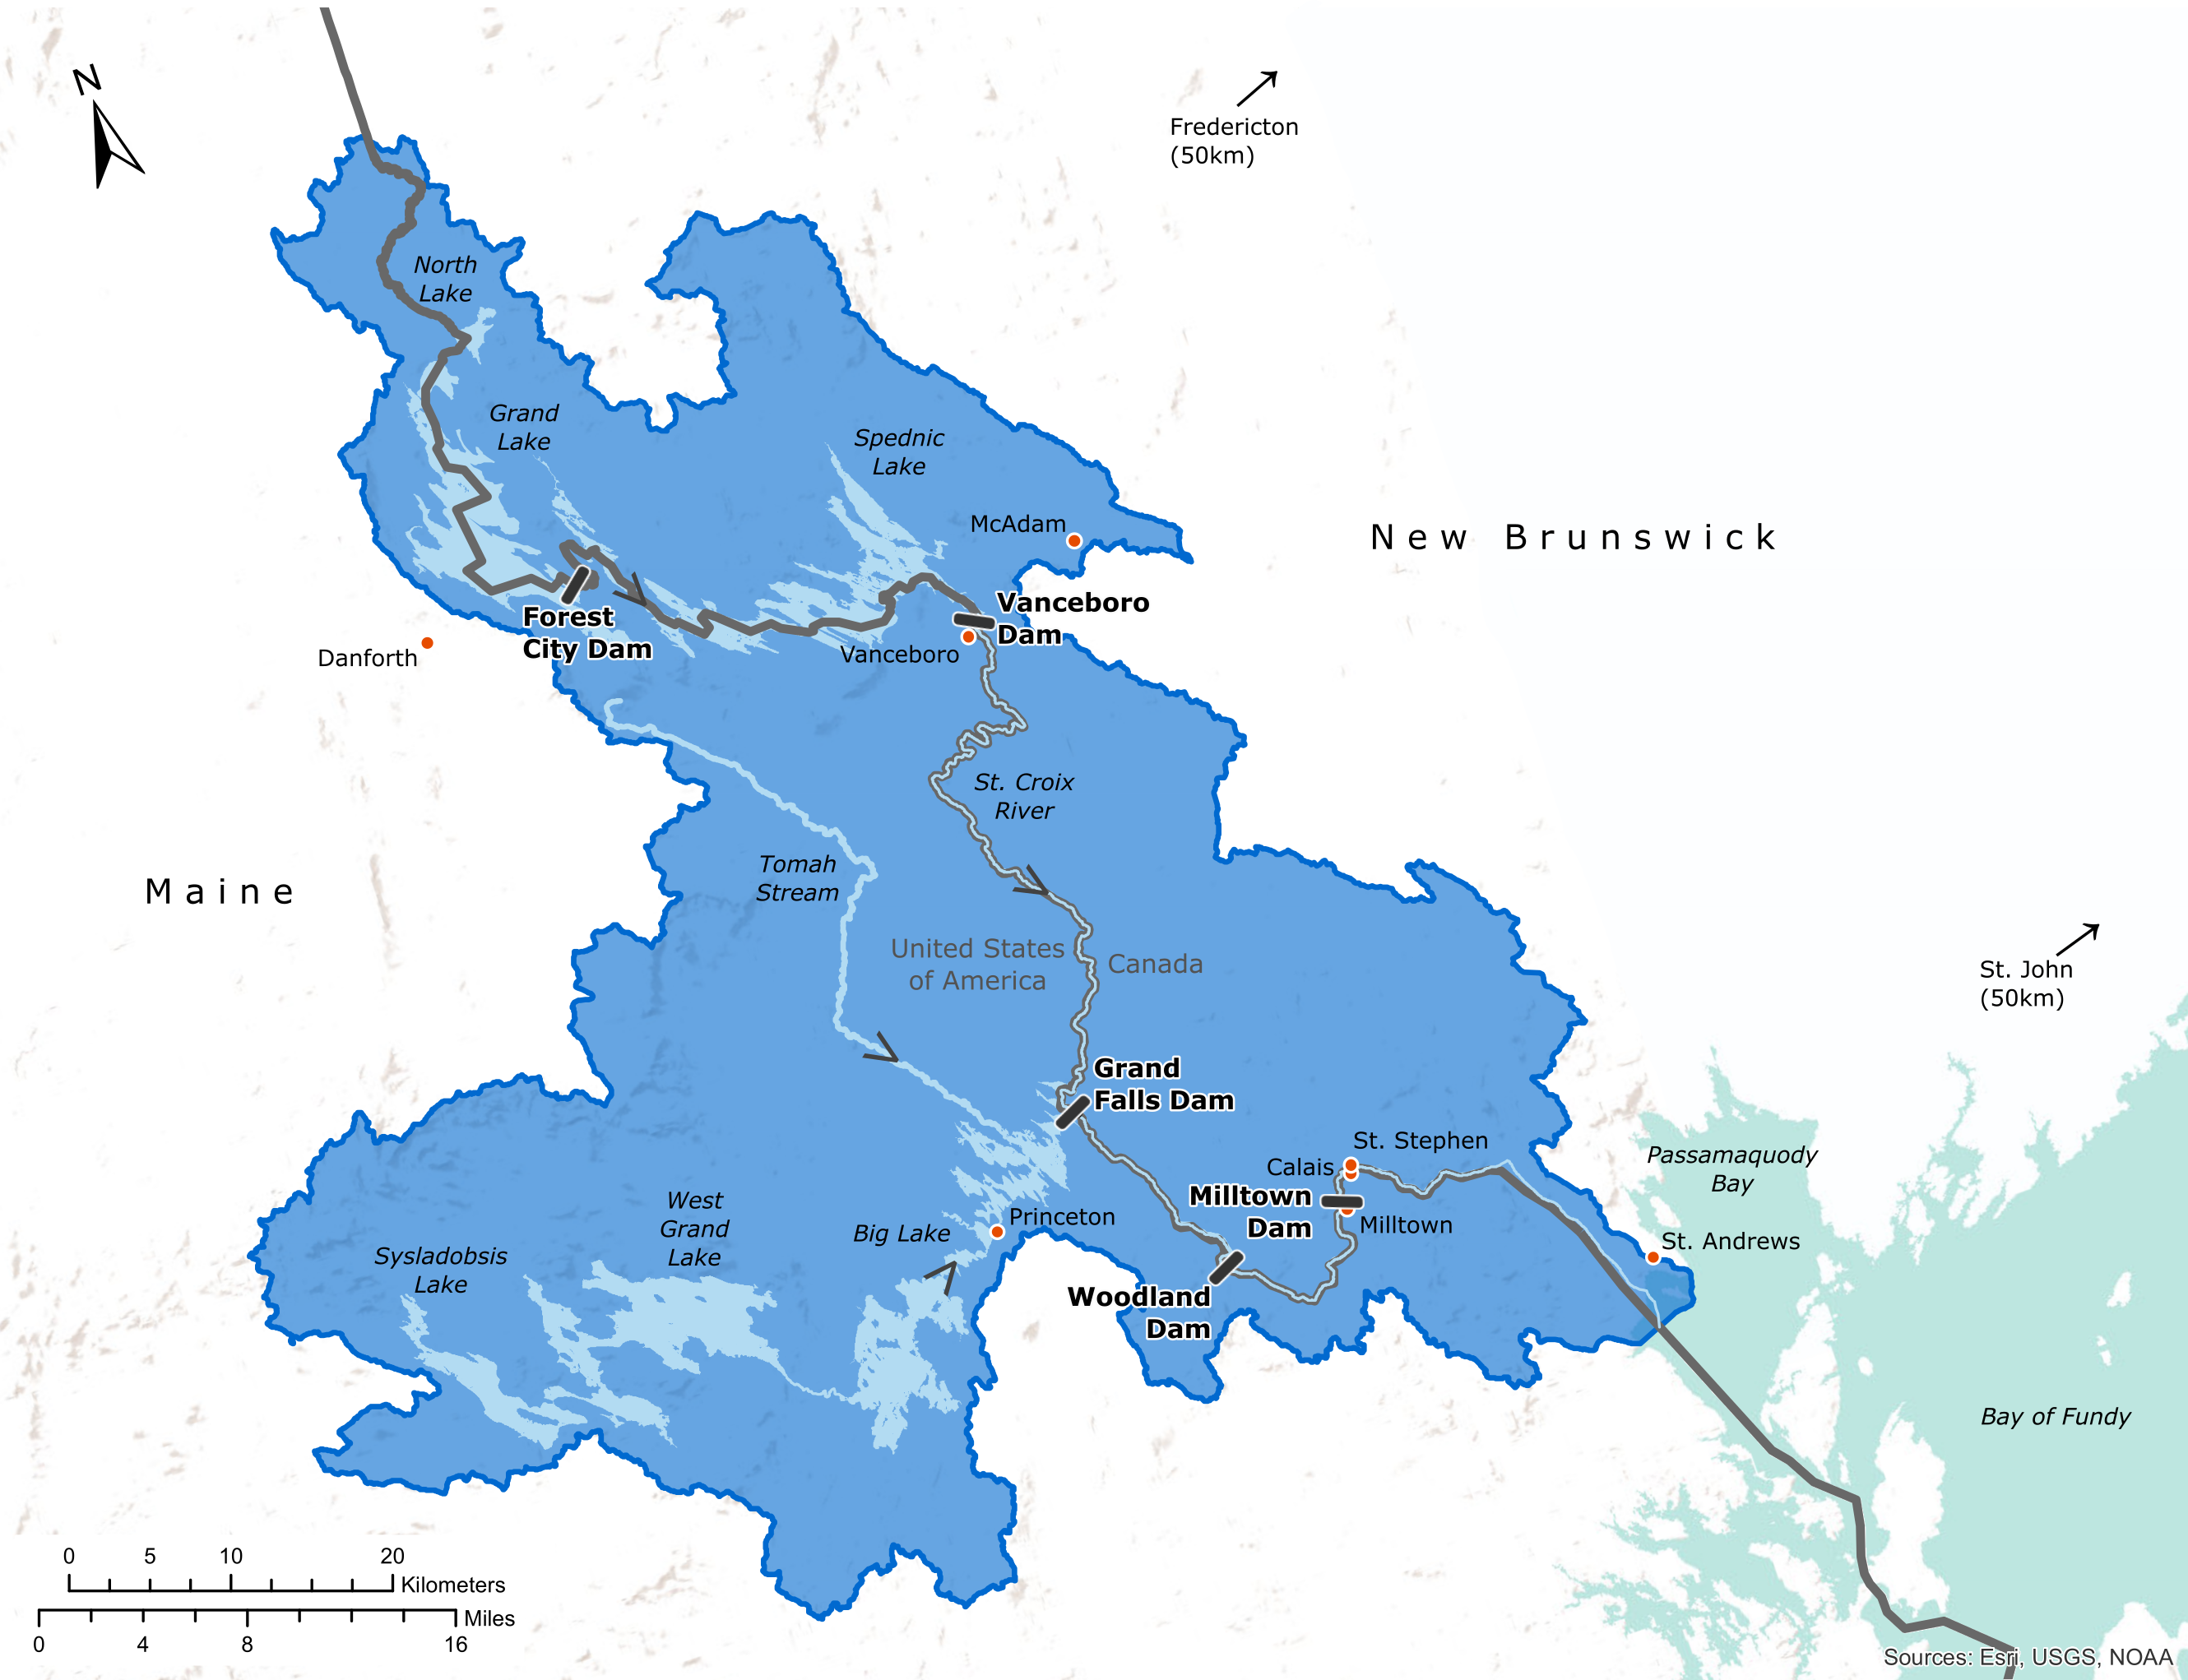 Map of St. Croix River Basin